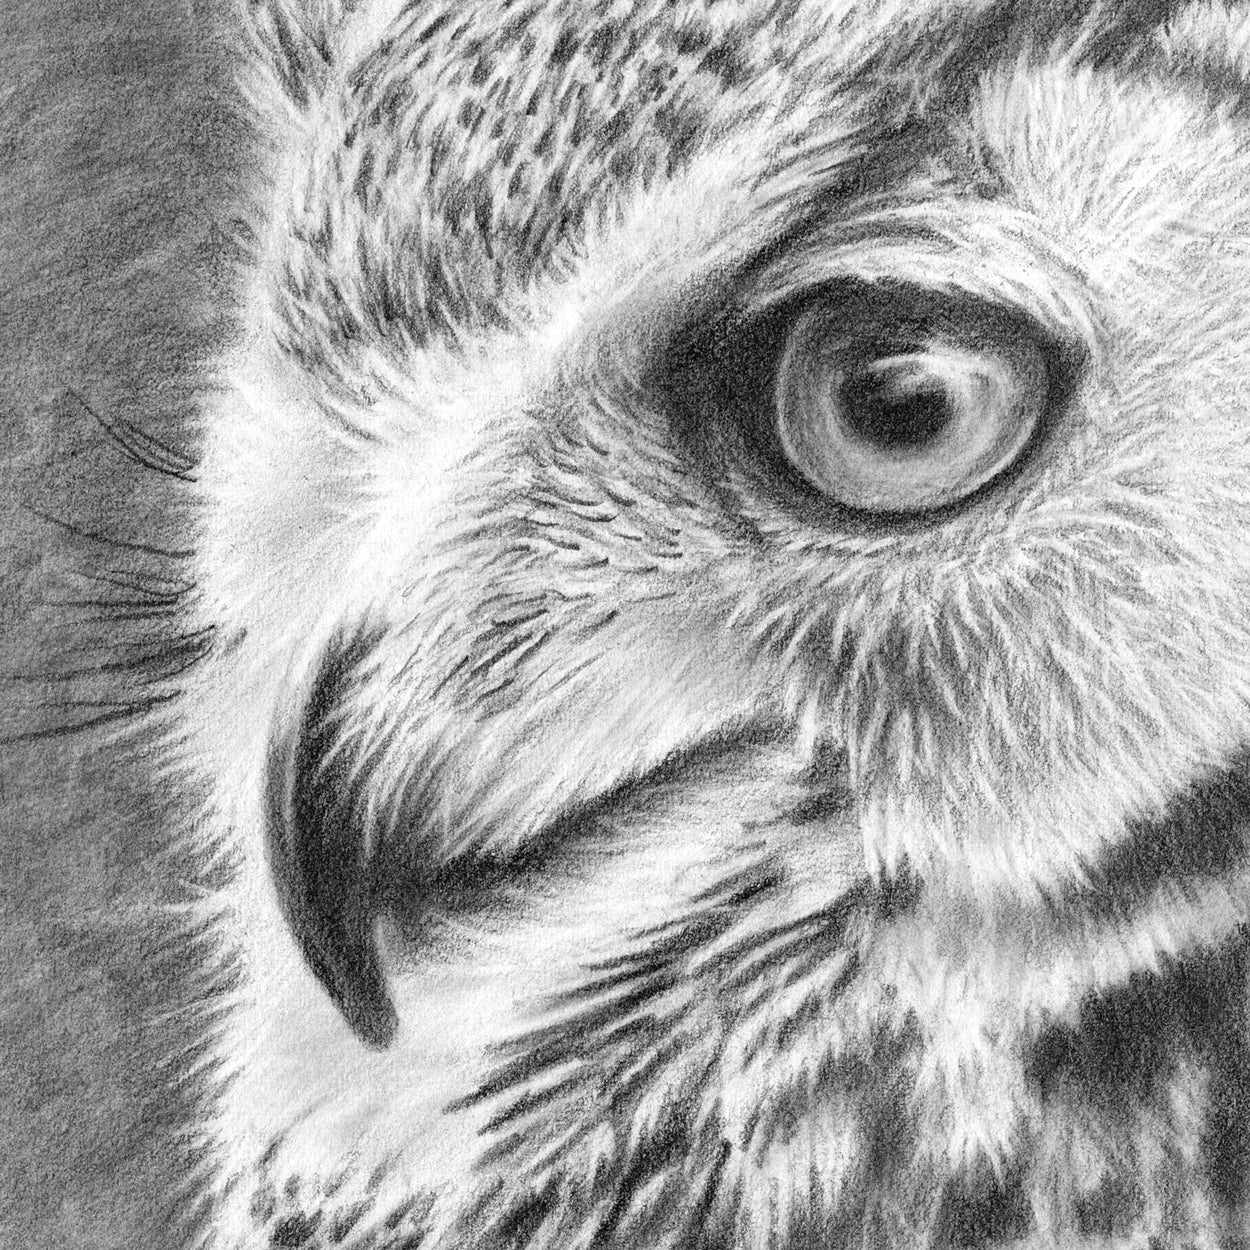 Great Horned Owl Graphite Drawing Close-up 2 - The Thriving Wild